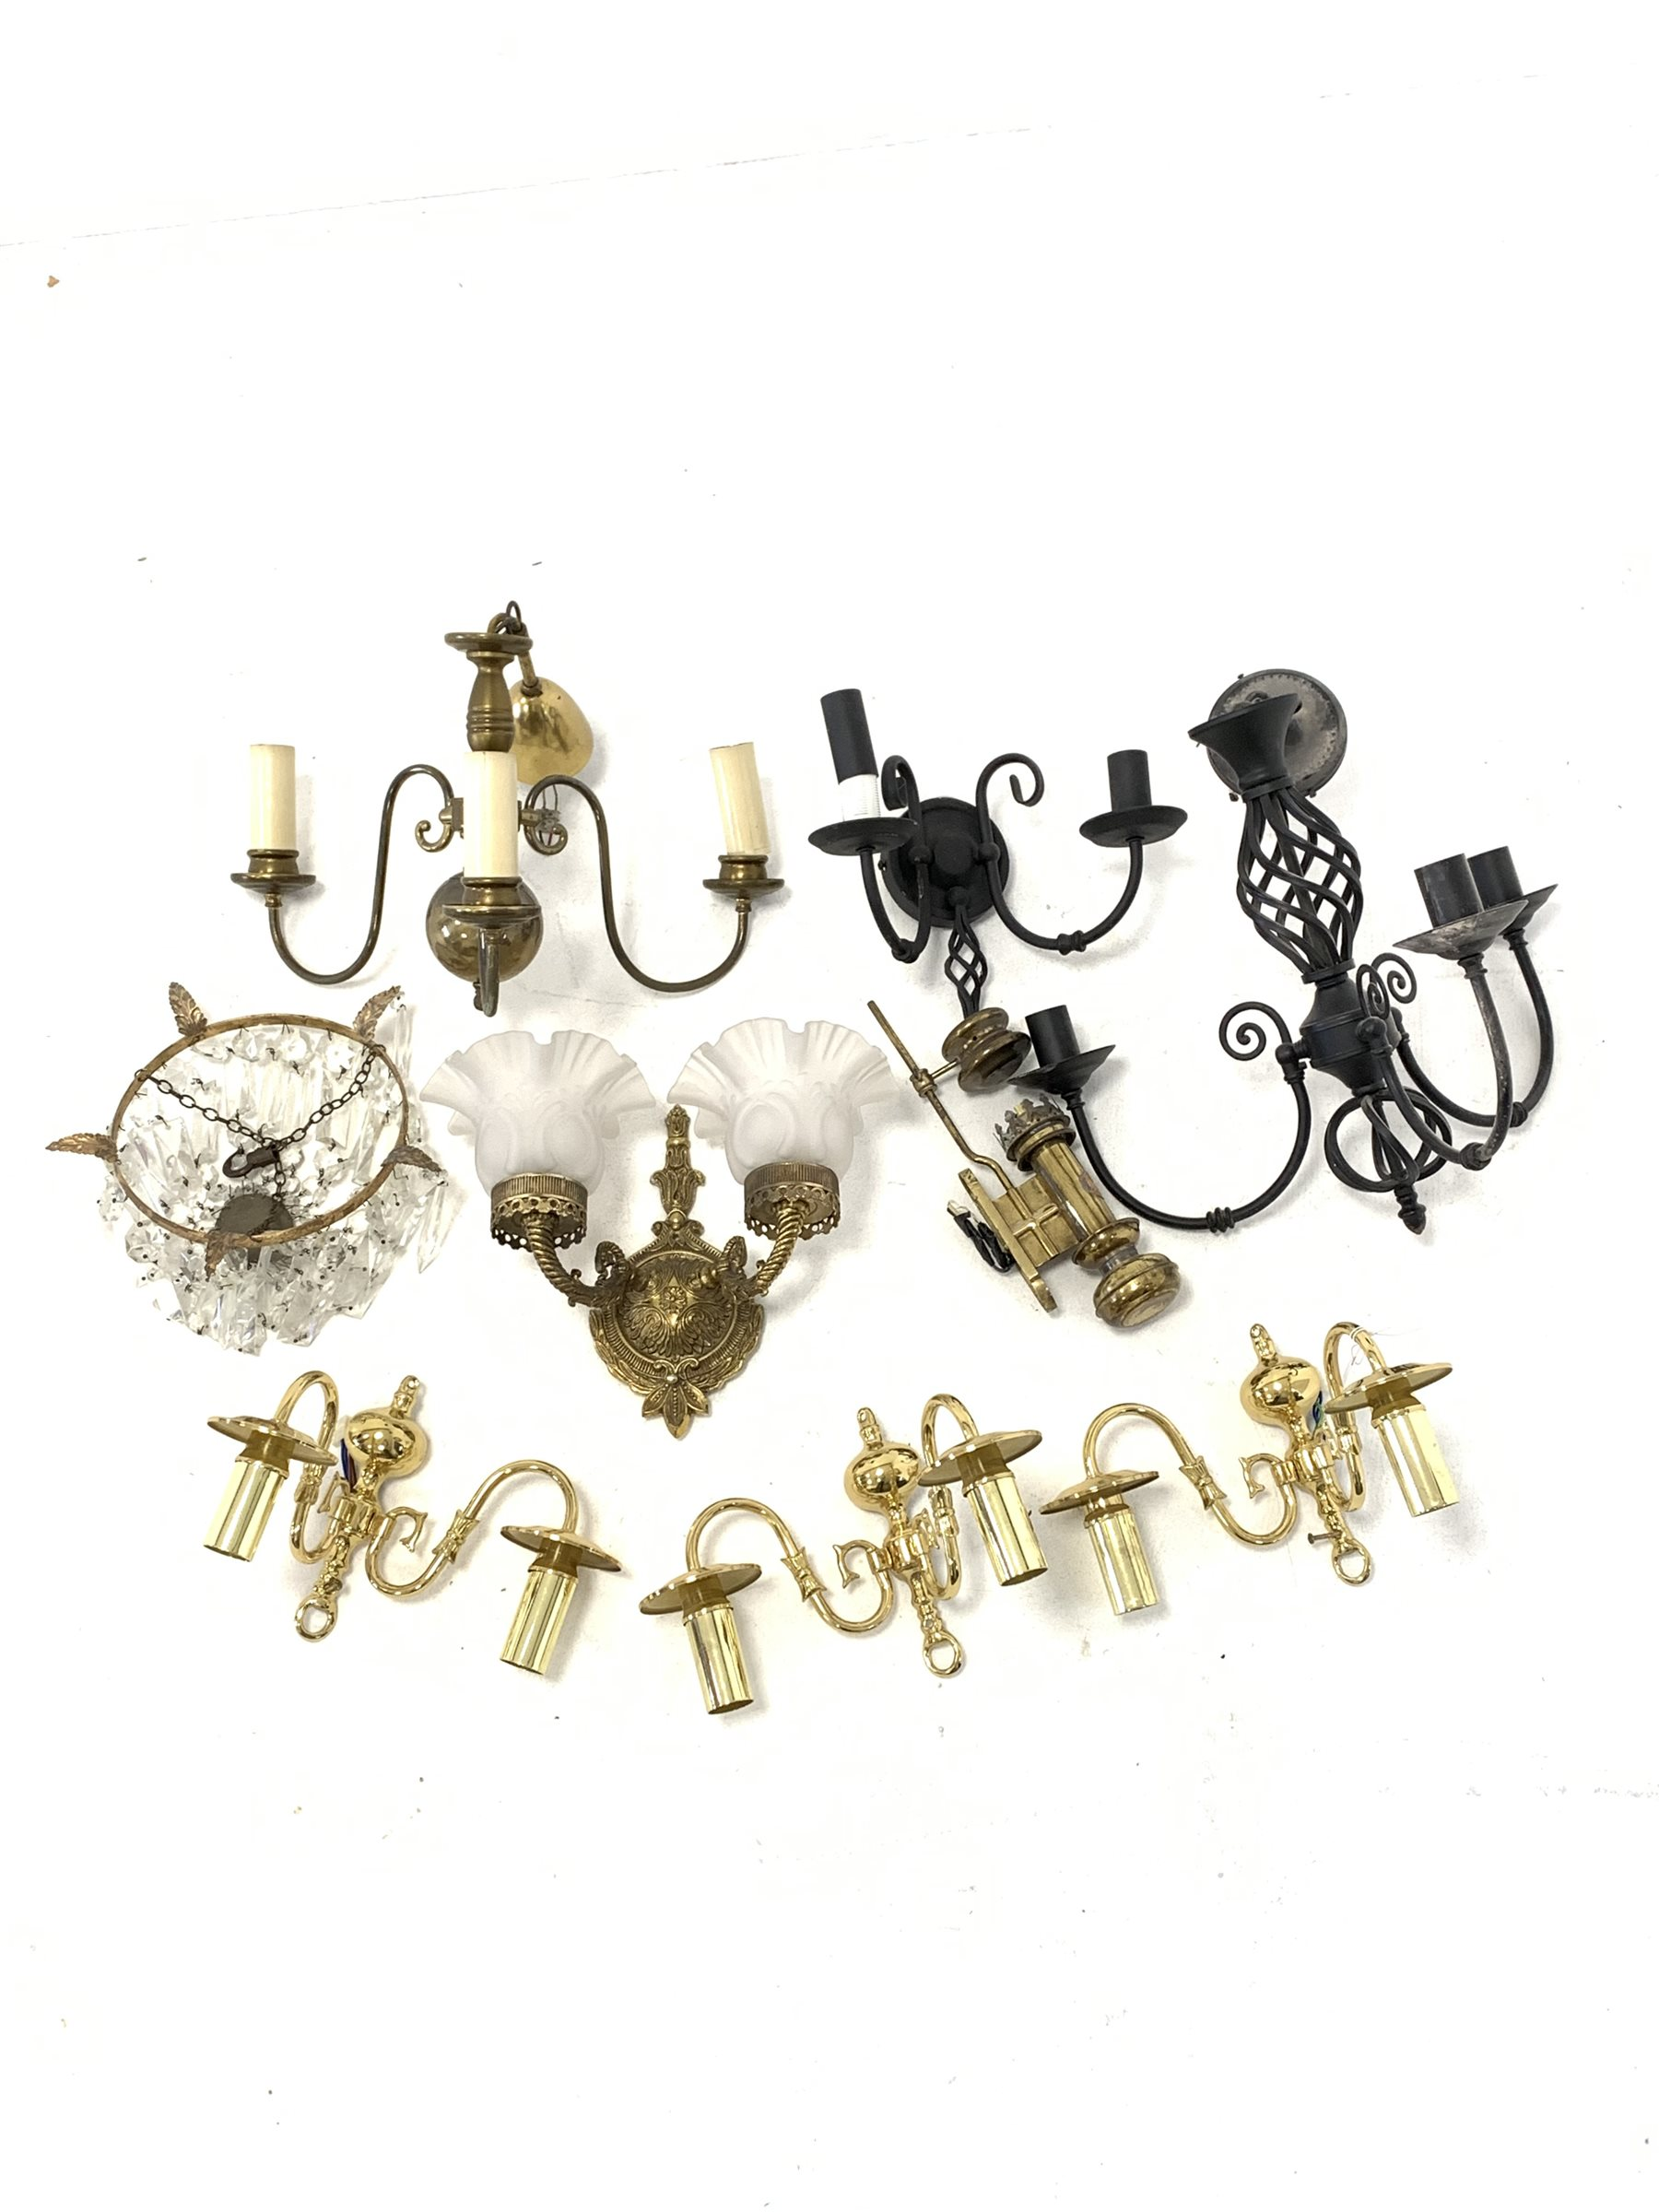 Gilt metal circlet light fitting hung with lustre drops, four various wall lights, reproduction Whit